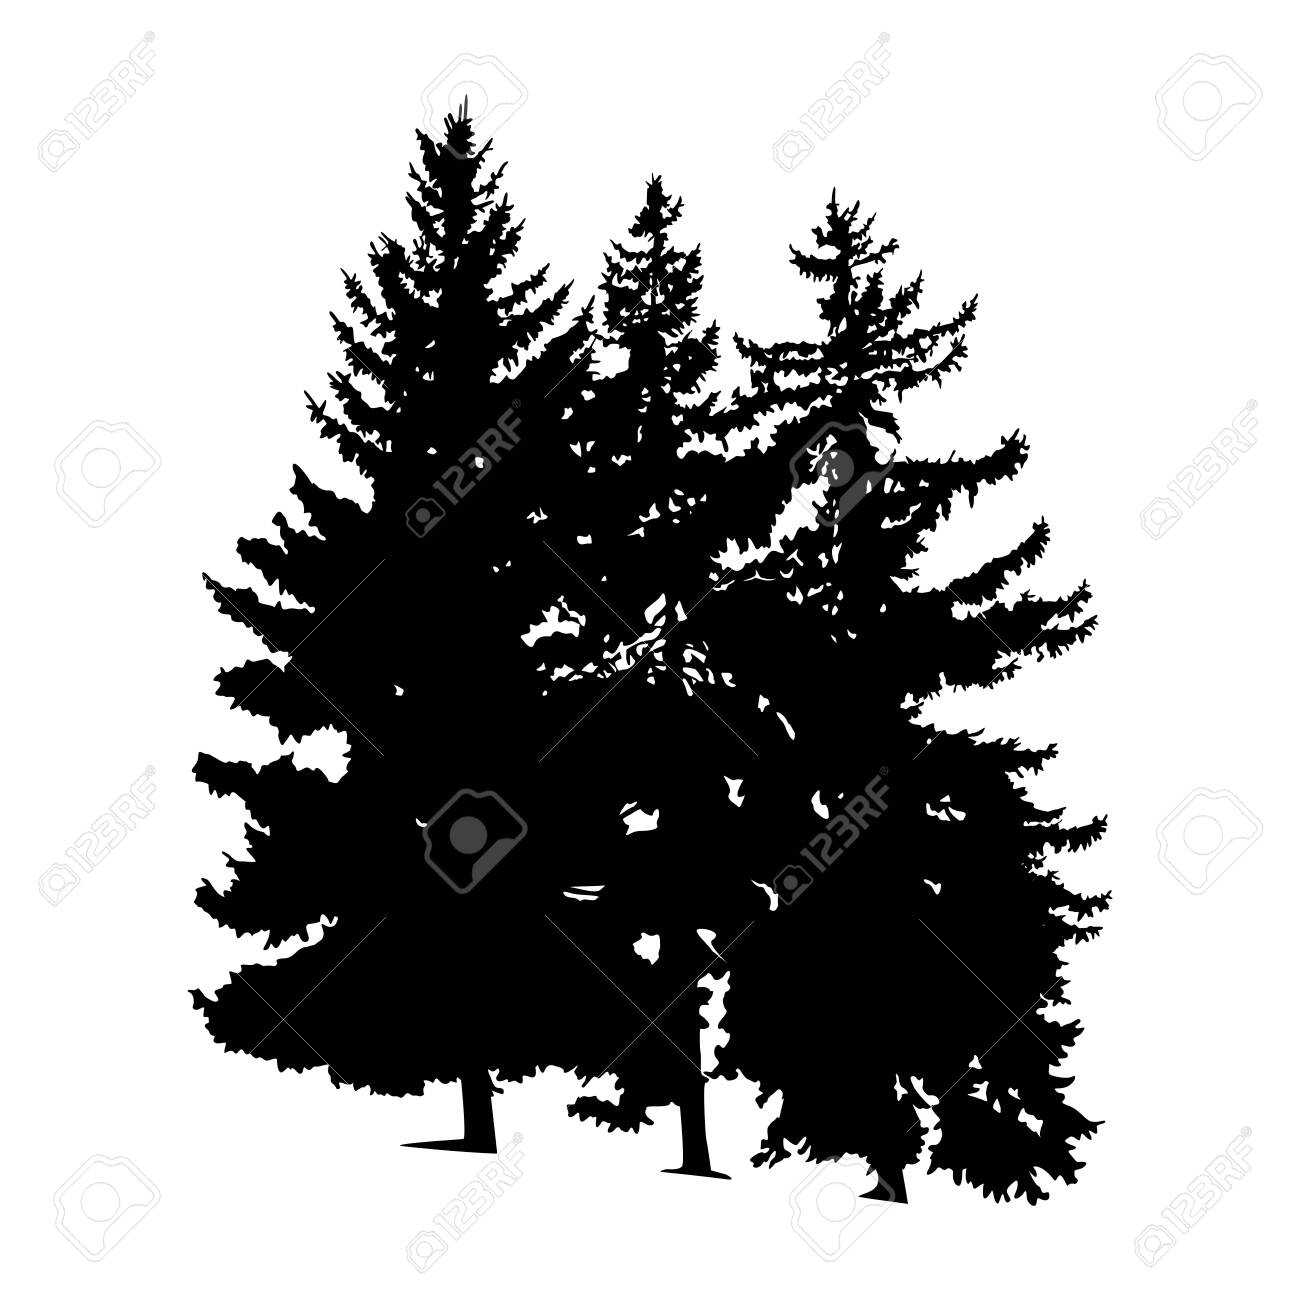 Silhouette of pine trees. Hand made. - 145209537